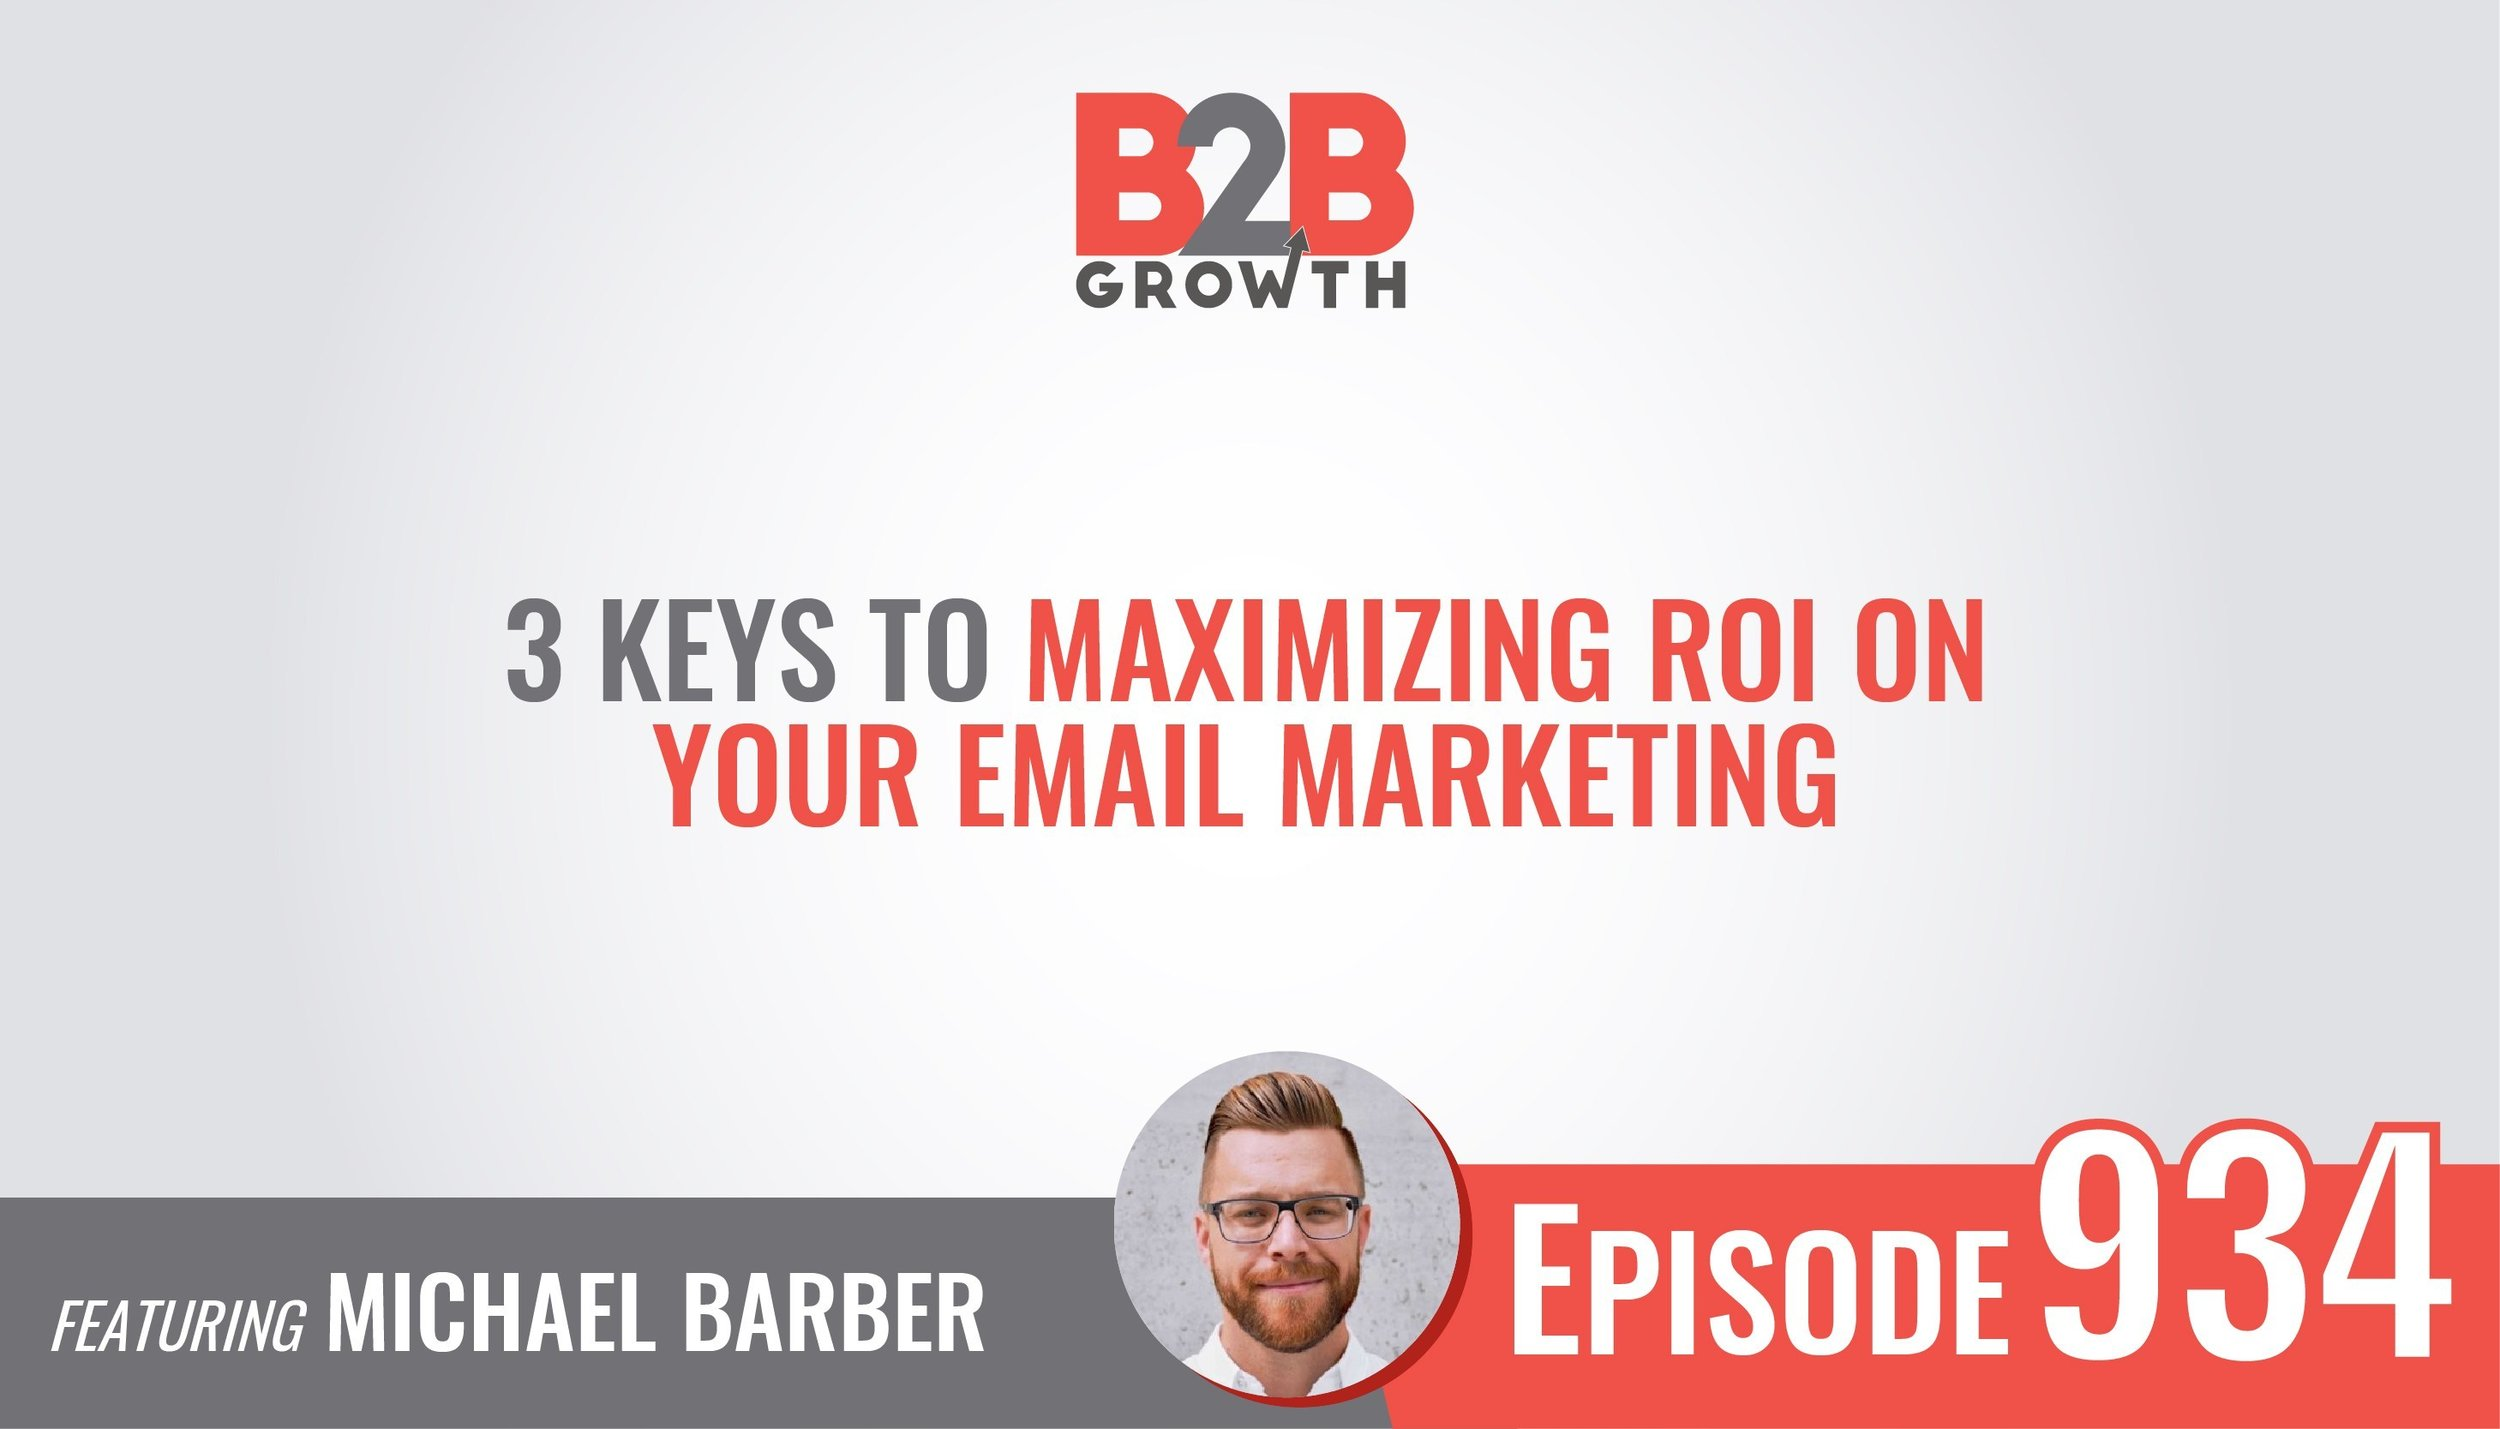 B2B-Growth-Podcast-Michael-Barber.jpg